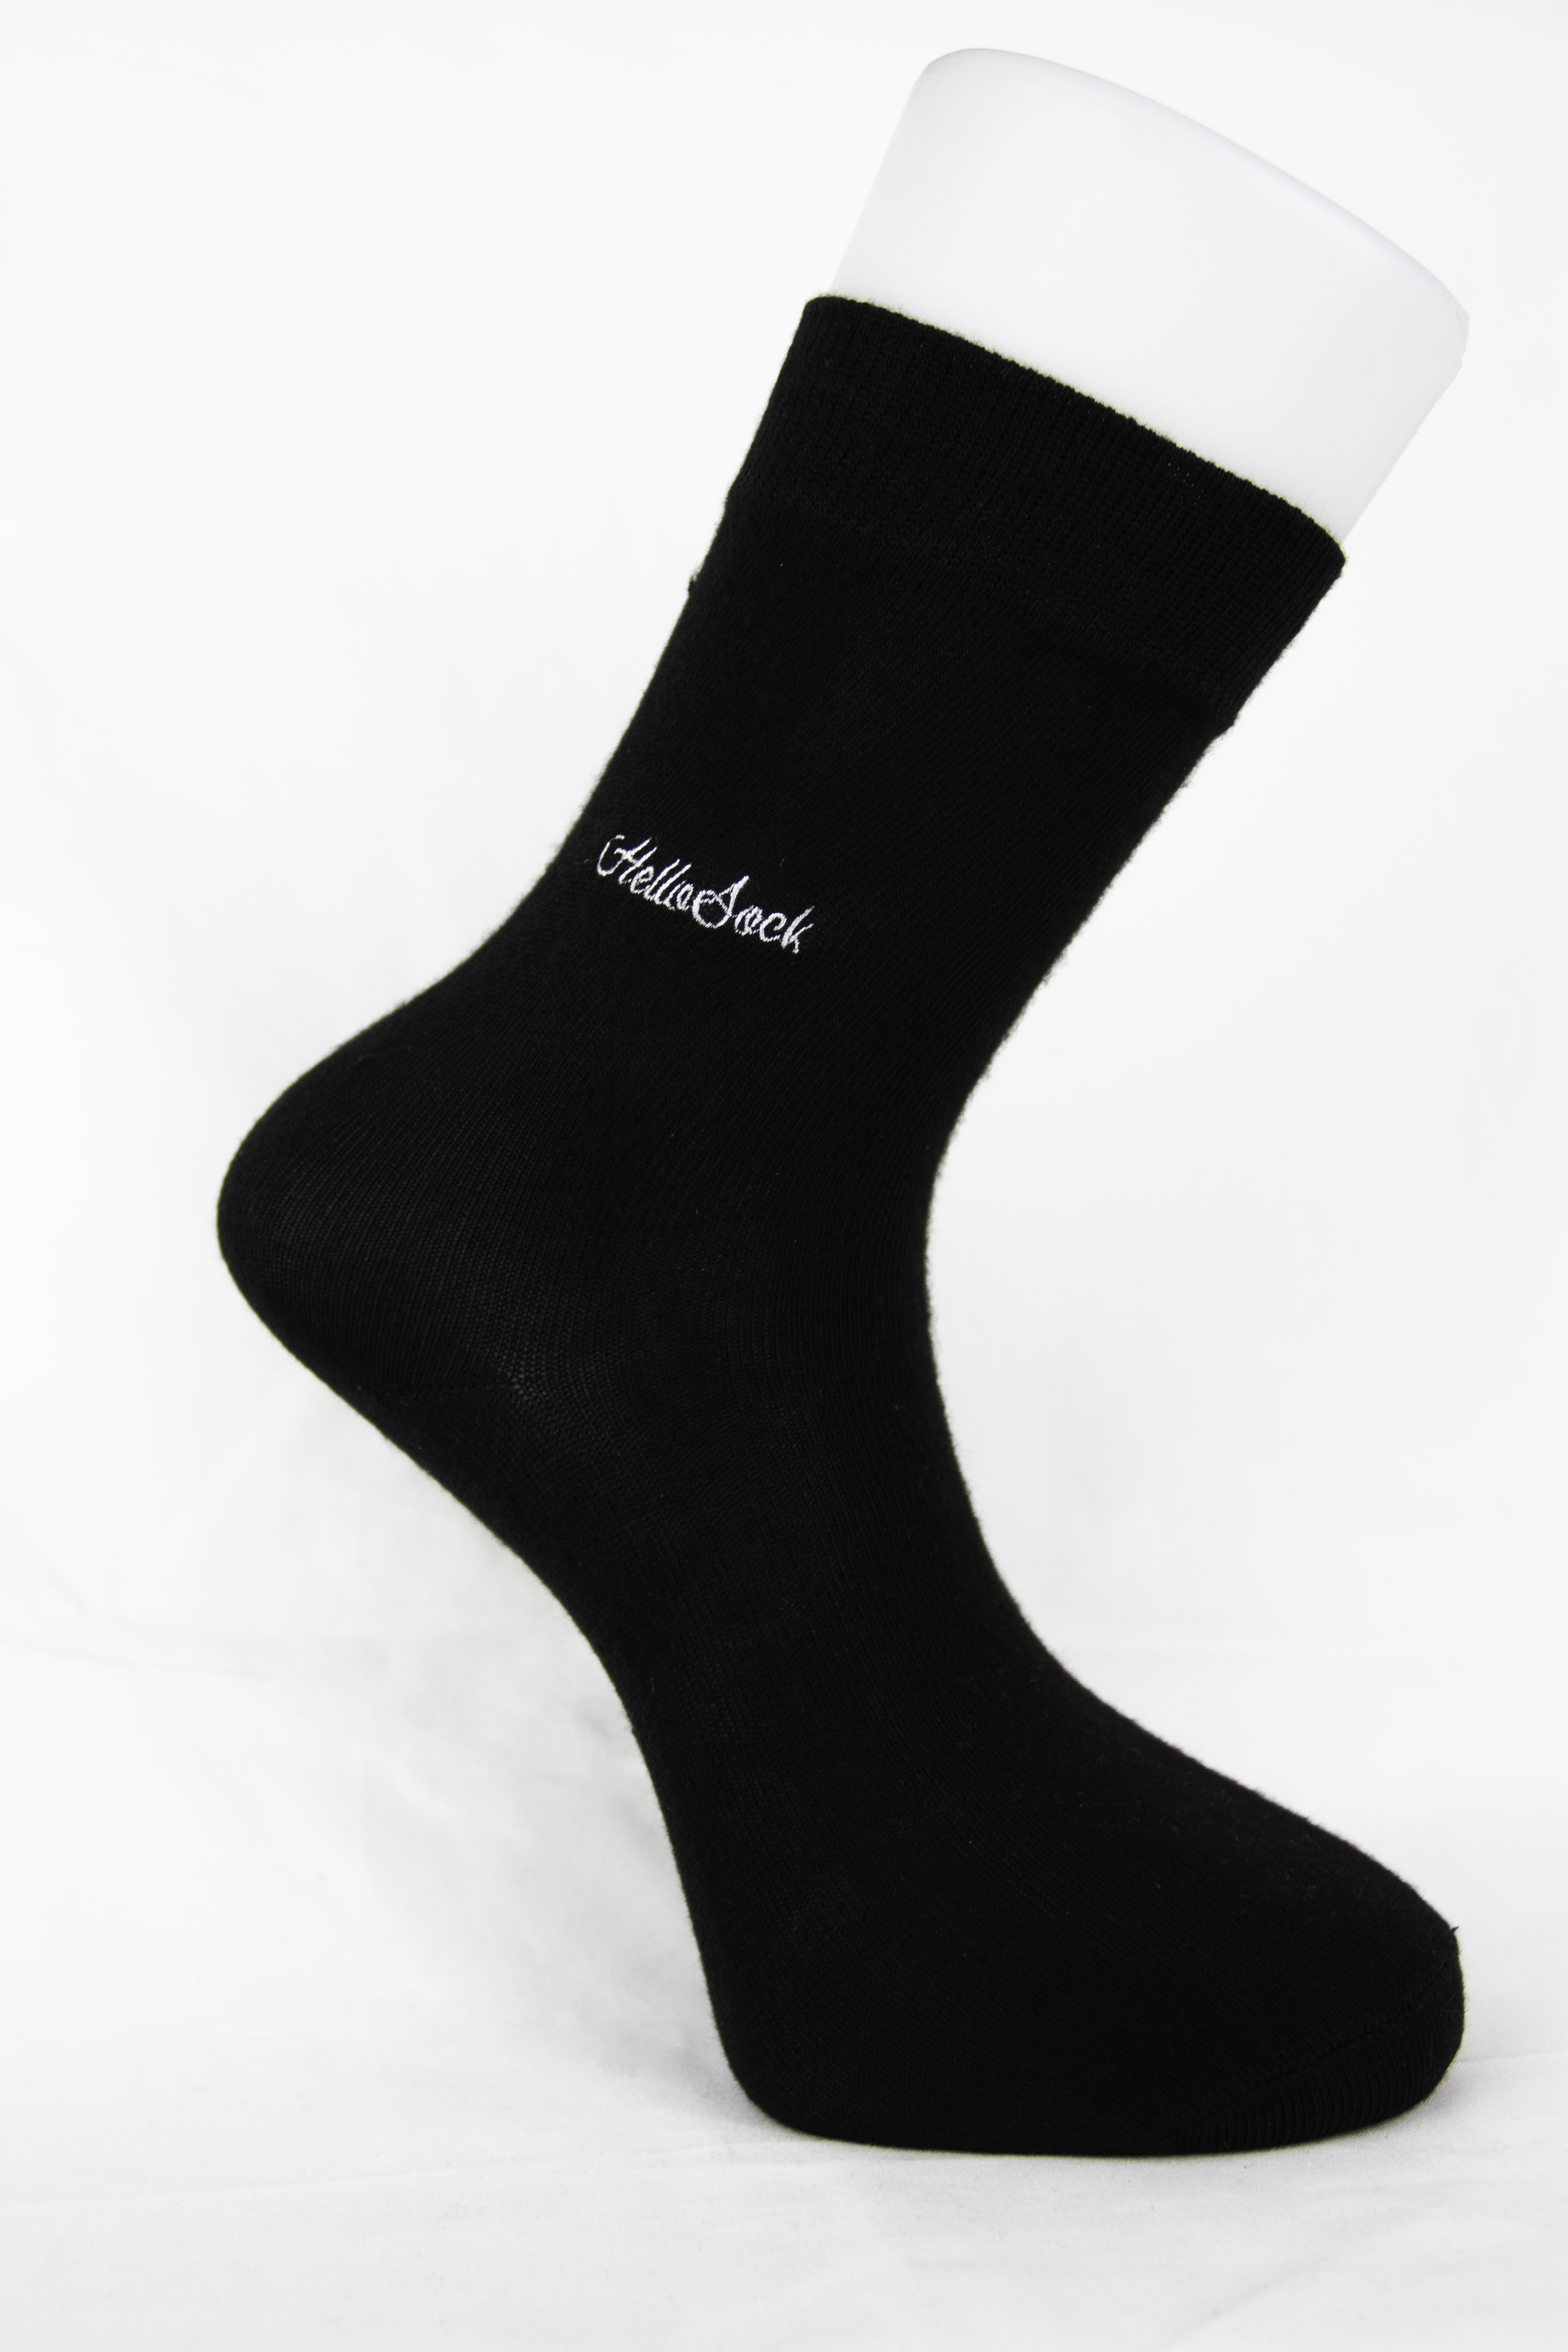 (3 Pairs) Men's Work, Casual, Fashion Socks | Get Fresh, Comfort & Trendy